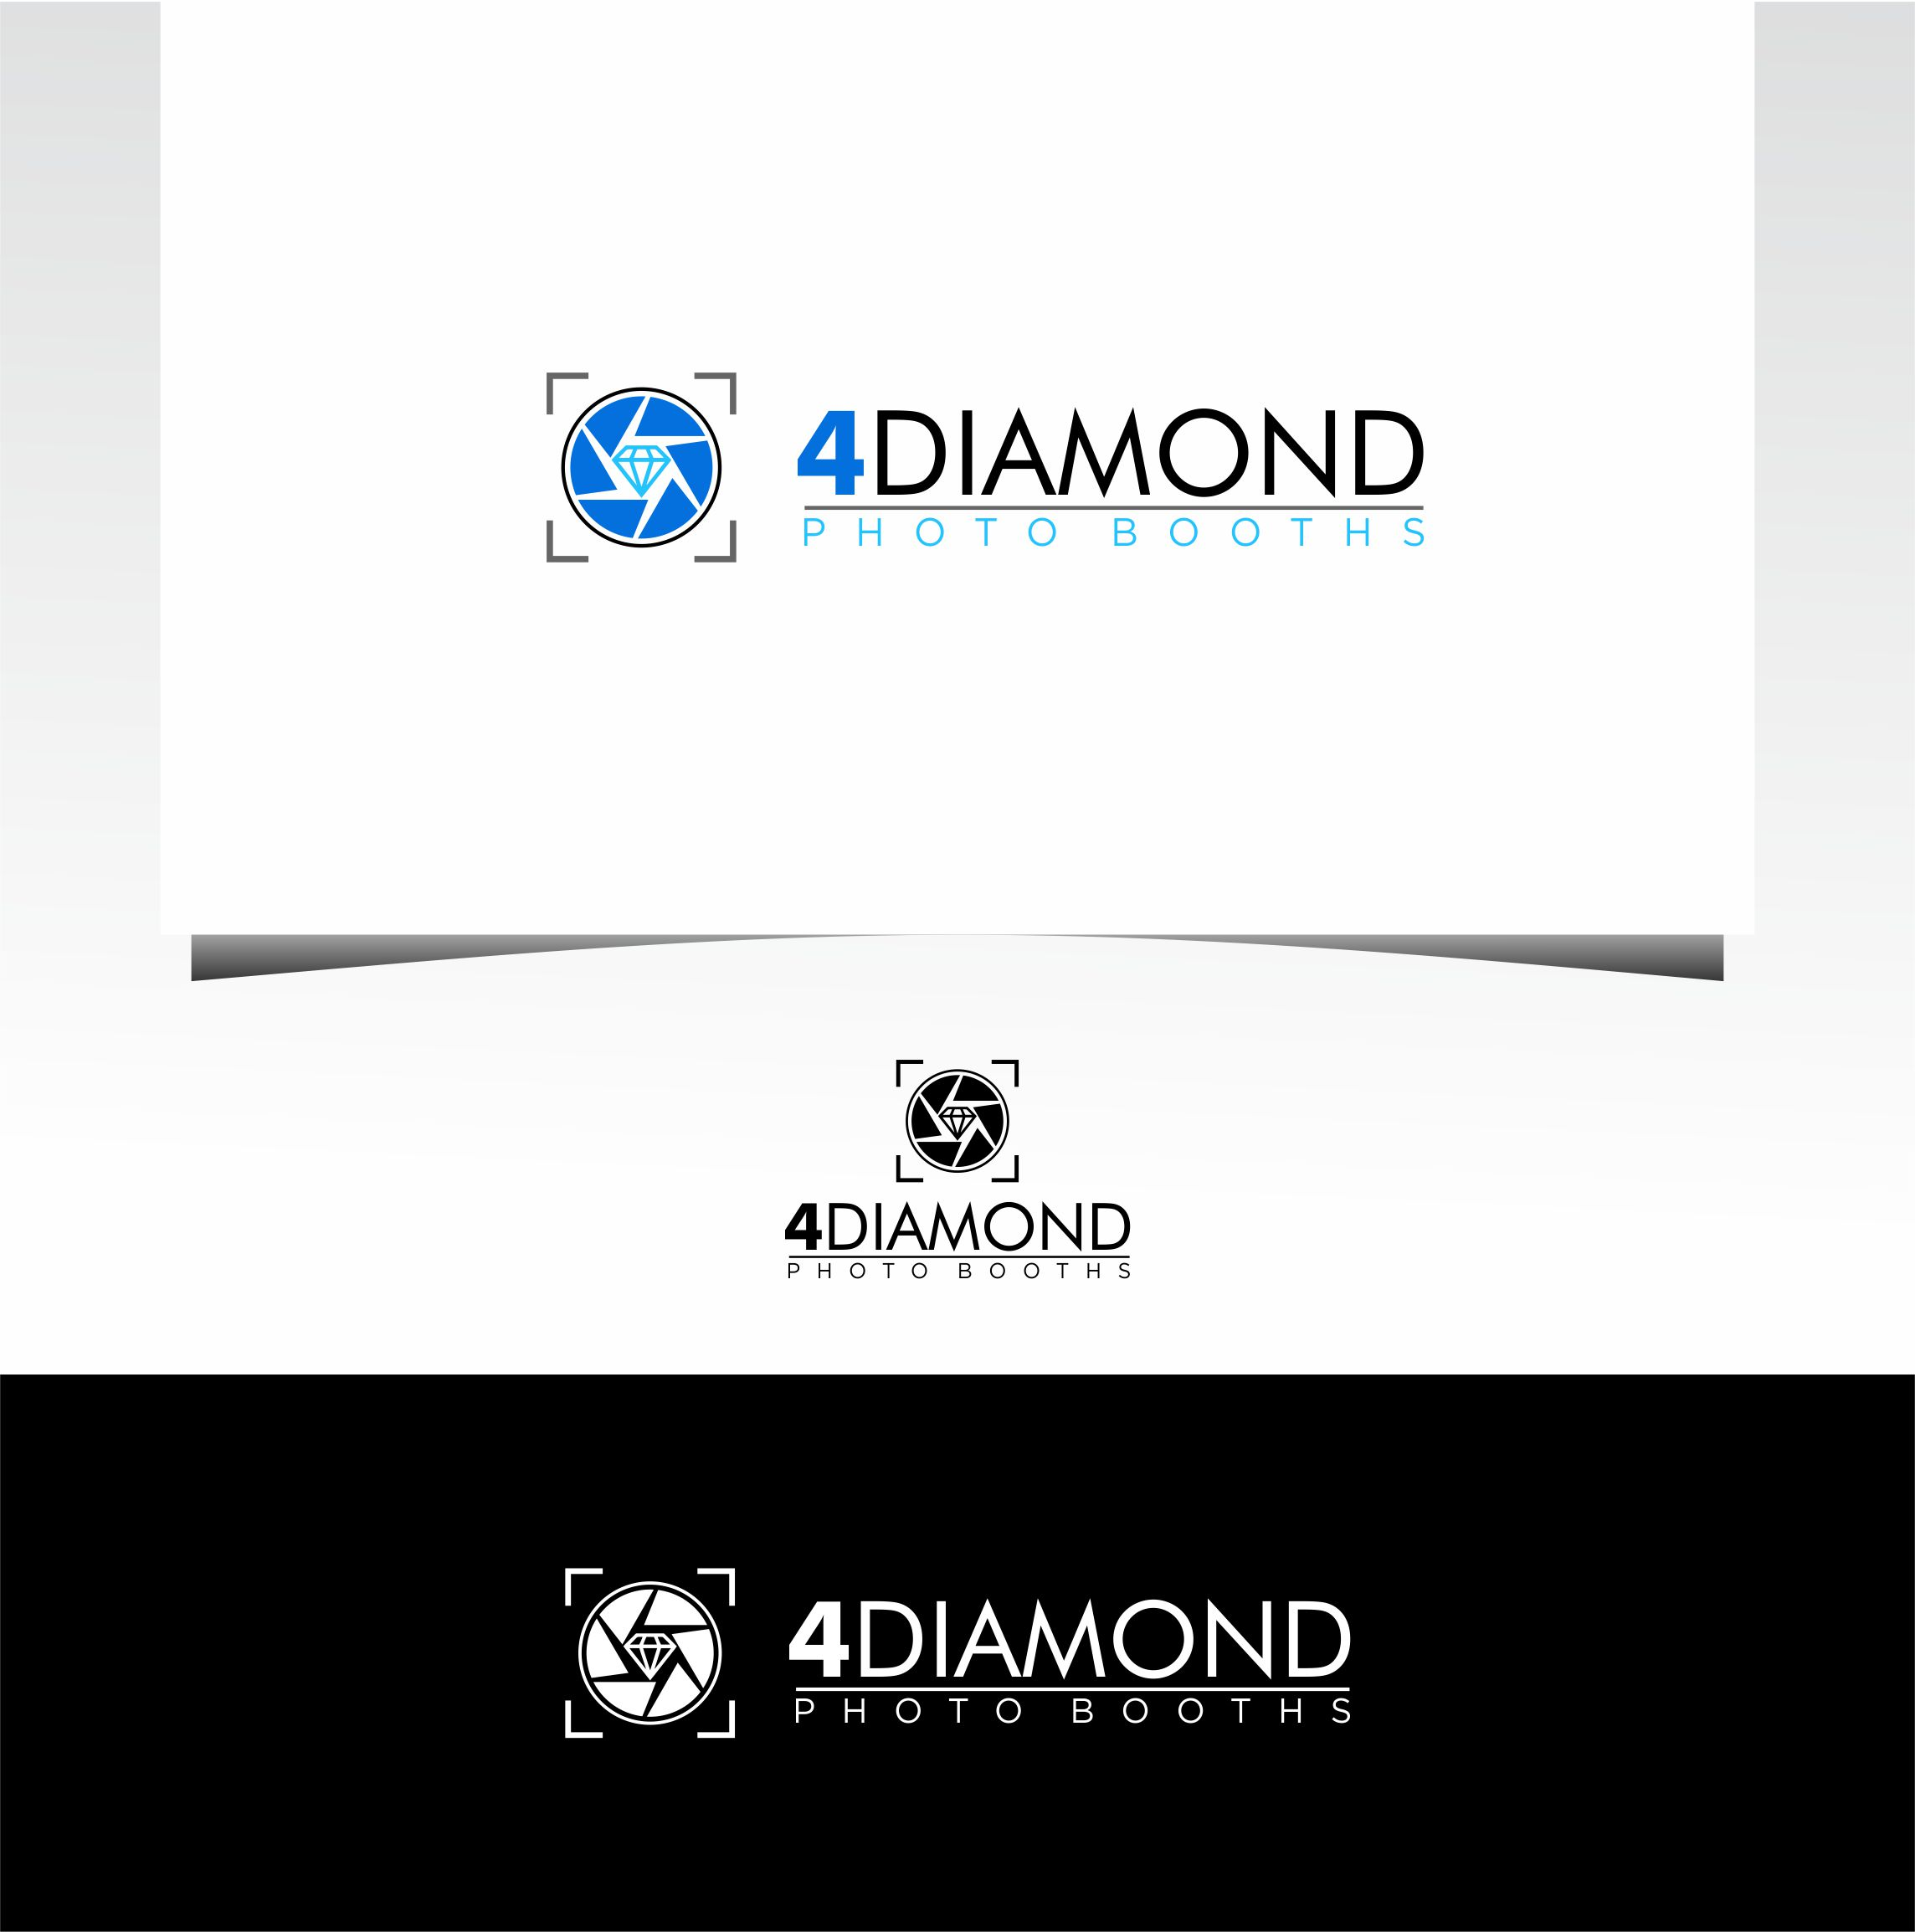 Logo Design by Raymond Garcia - Entry No. 14 in the Logo Design Contest Creative Logo Design for 4 Diamond Photo Booths.